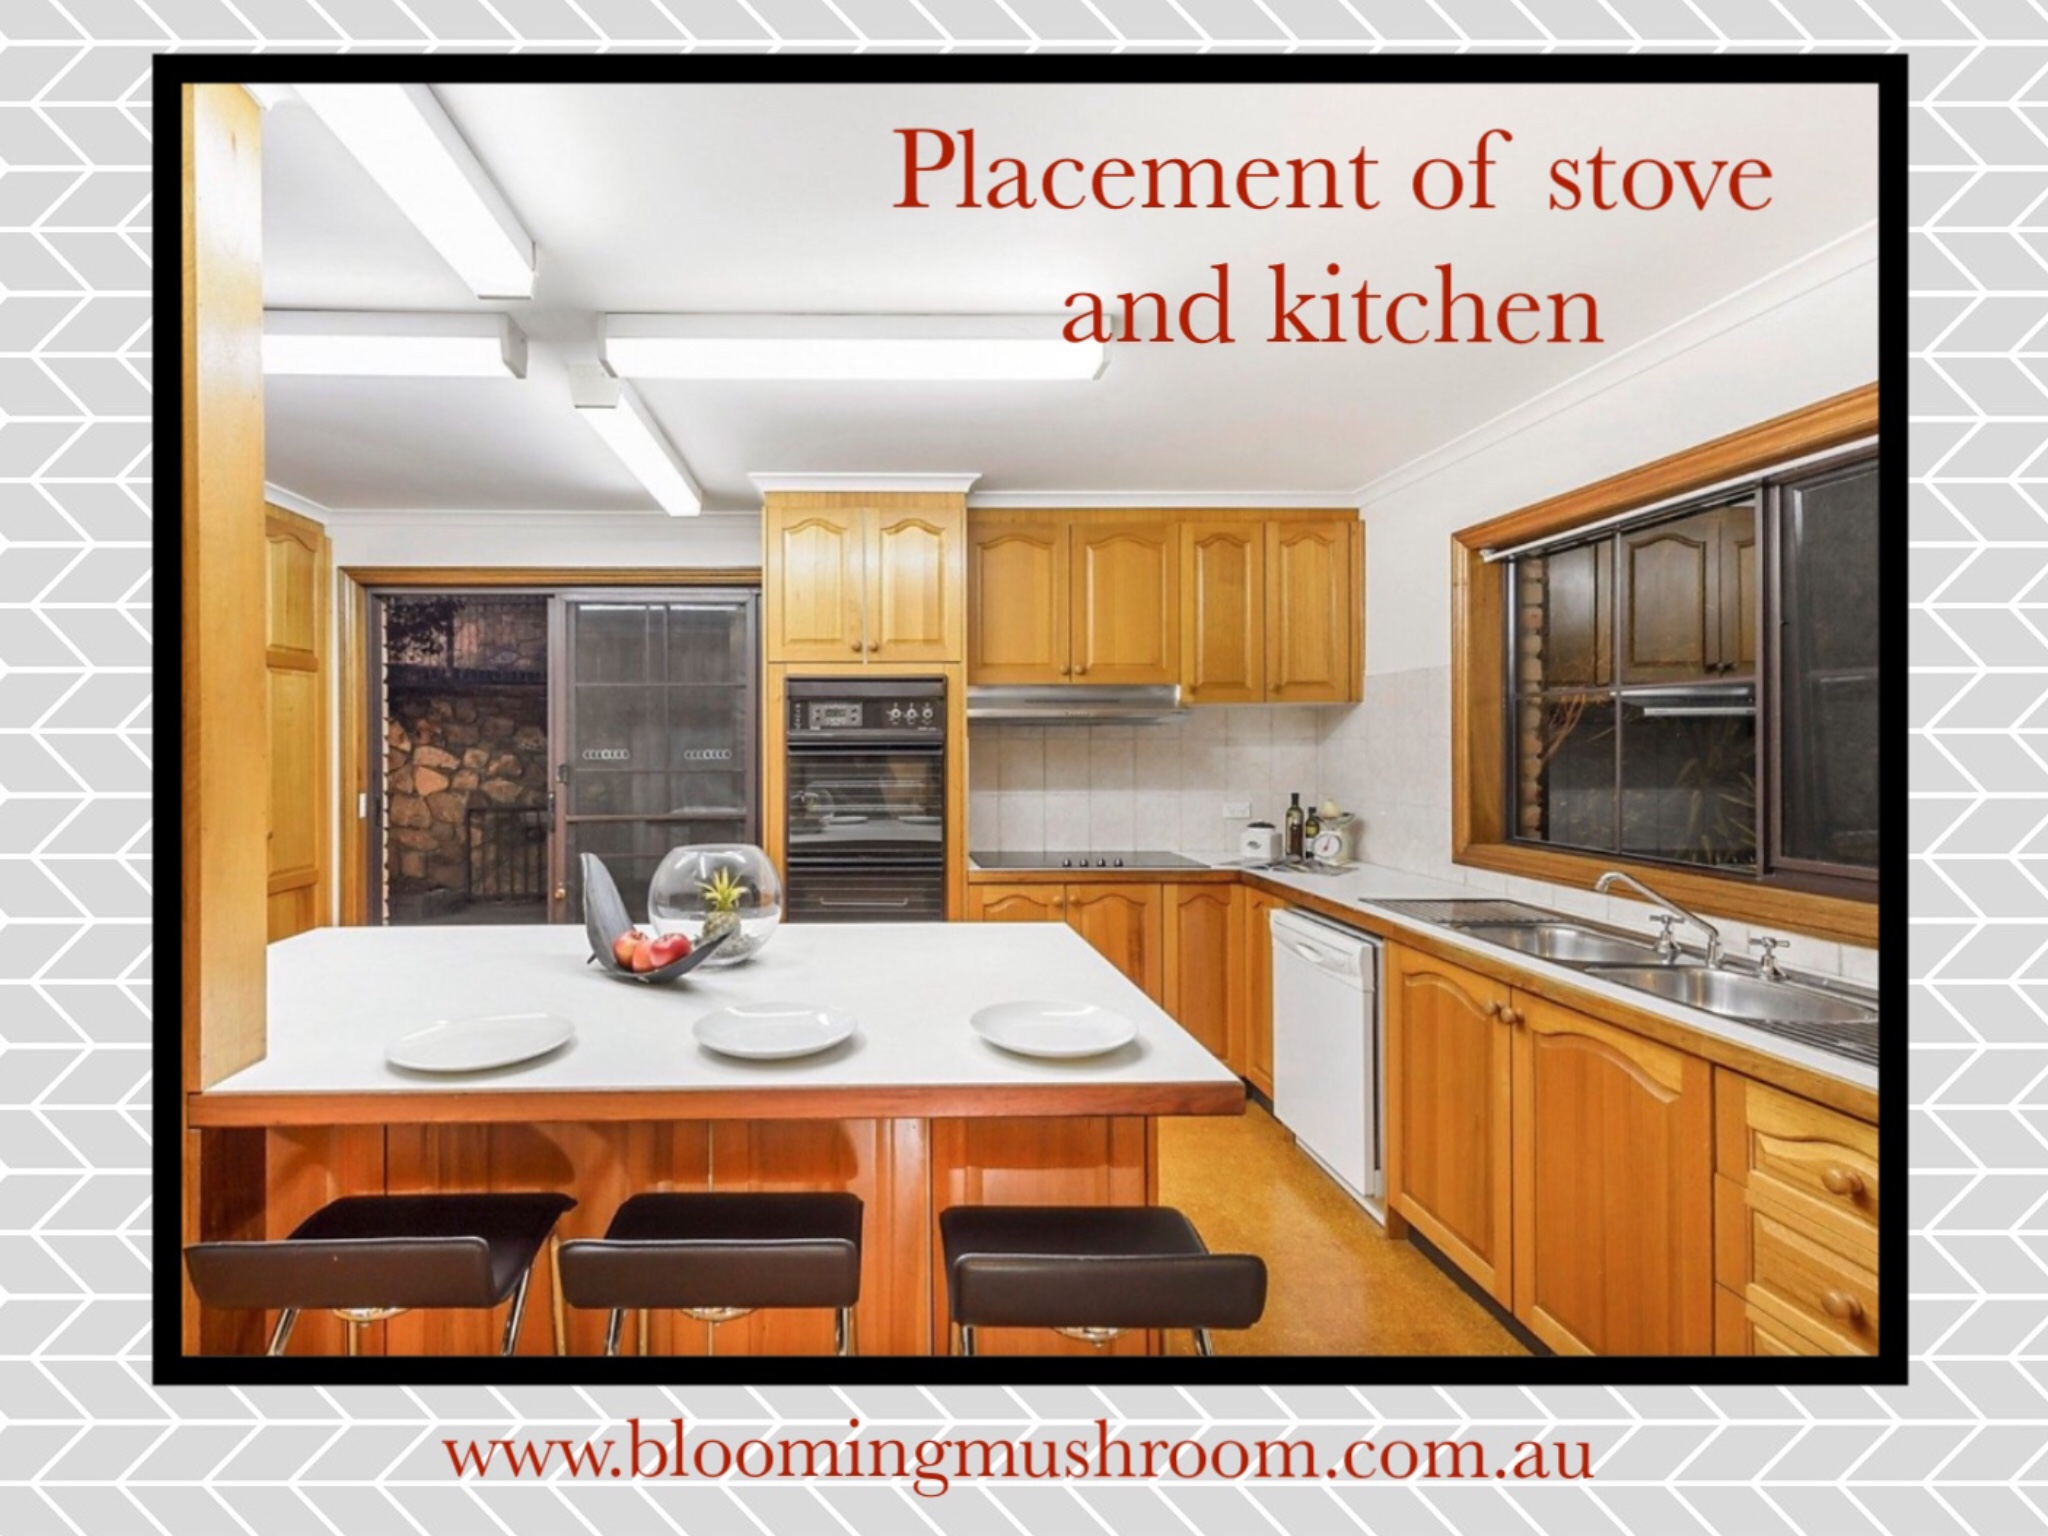 One Of The Directions That Should Not Have A Stove Or Kitchen Is The  Northwest. Try And Avoid Placing The Kitchen In The Northwest Of The House.